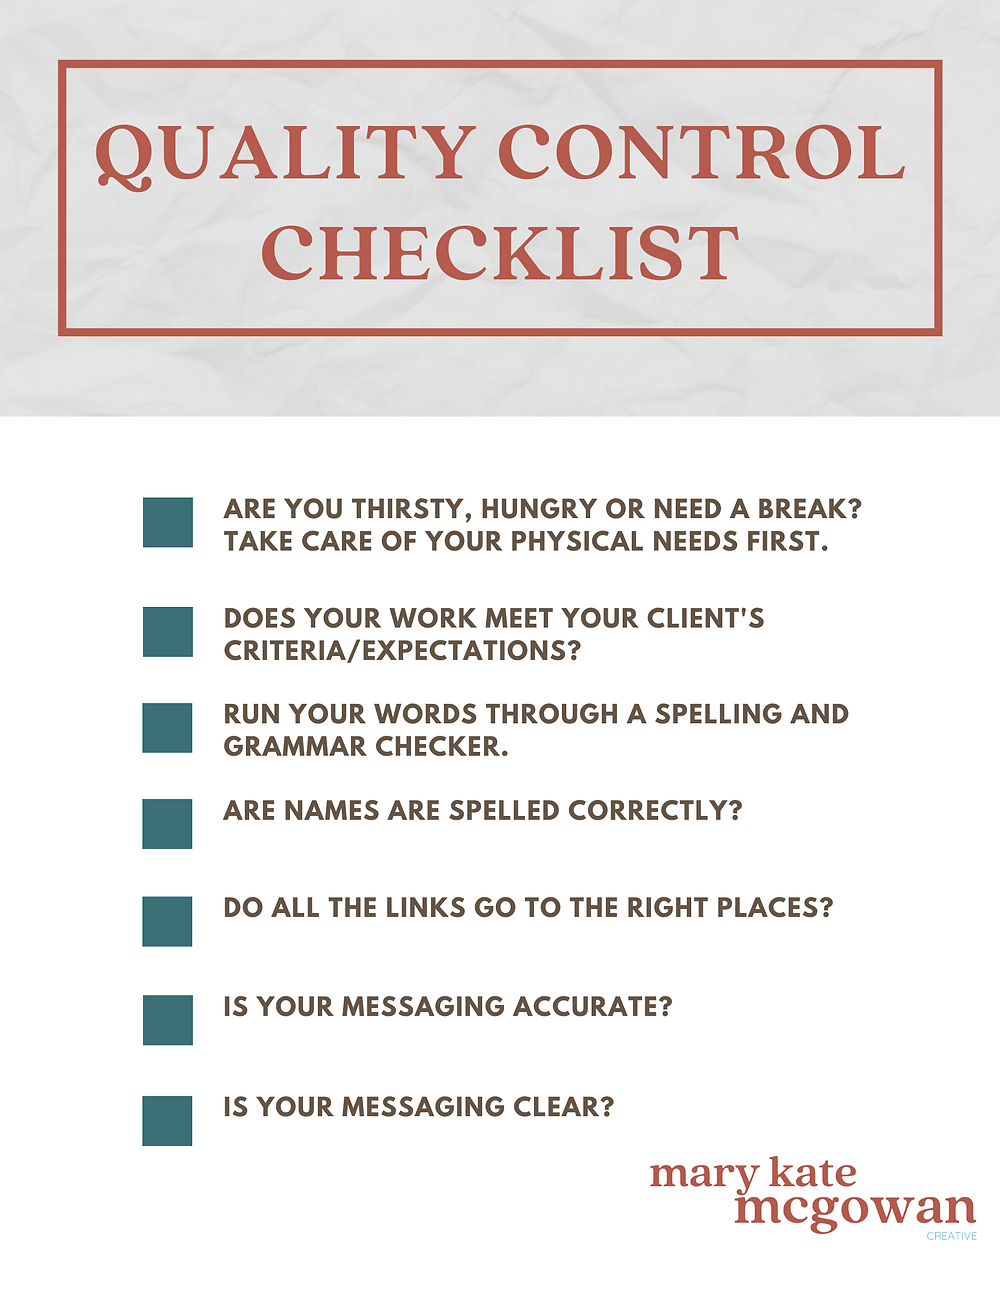 Quality Control Checklist Are you thirsty, hungry or need a break? Take care of your physical needs first. Does your work meet your client's criteria/expectations? Run your words through a spelling and grammar checker. Are names are spelled correctly? Do all the links go to the right places? Is your messaging accurate? Is your messaging clear?